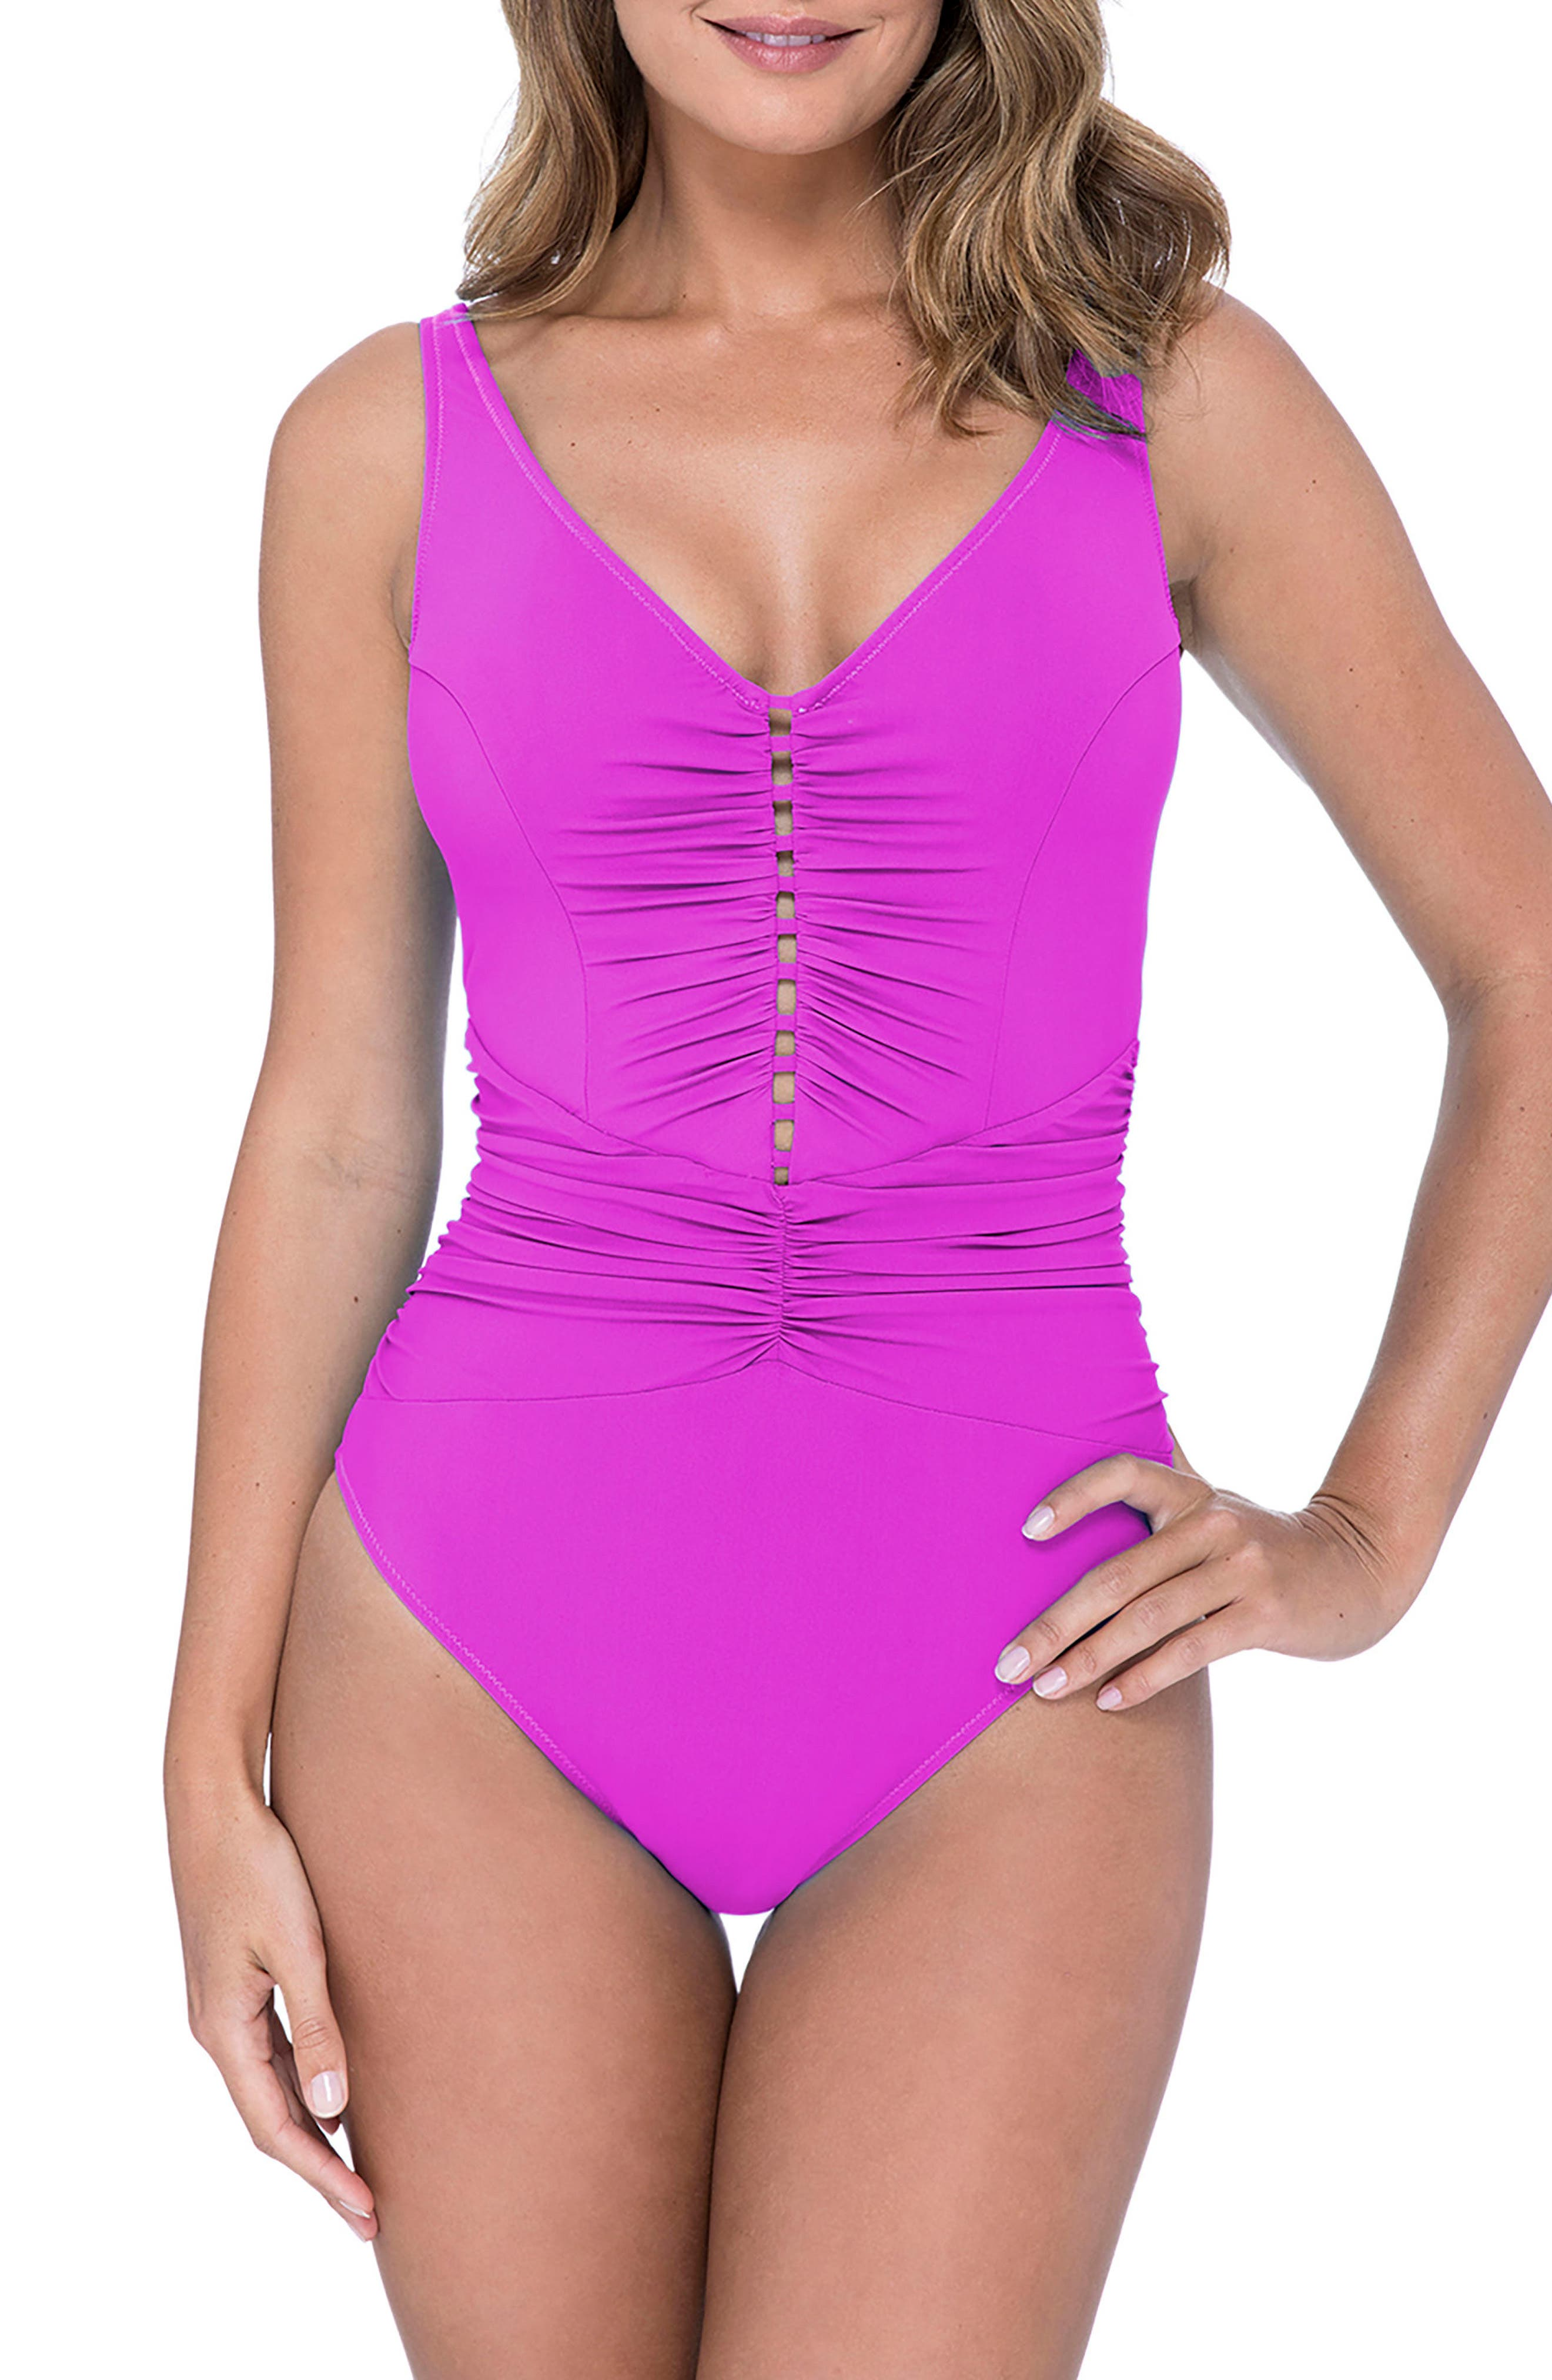 Cocktail Party One-Piece Swimsuit,                             Main thumbnail 1, color,                             WARM VIOLA